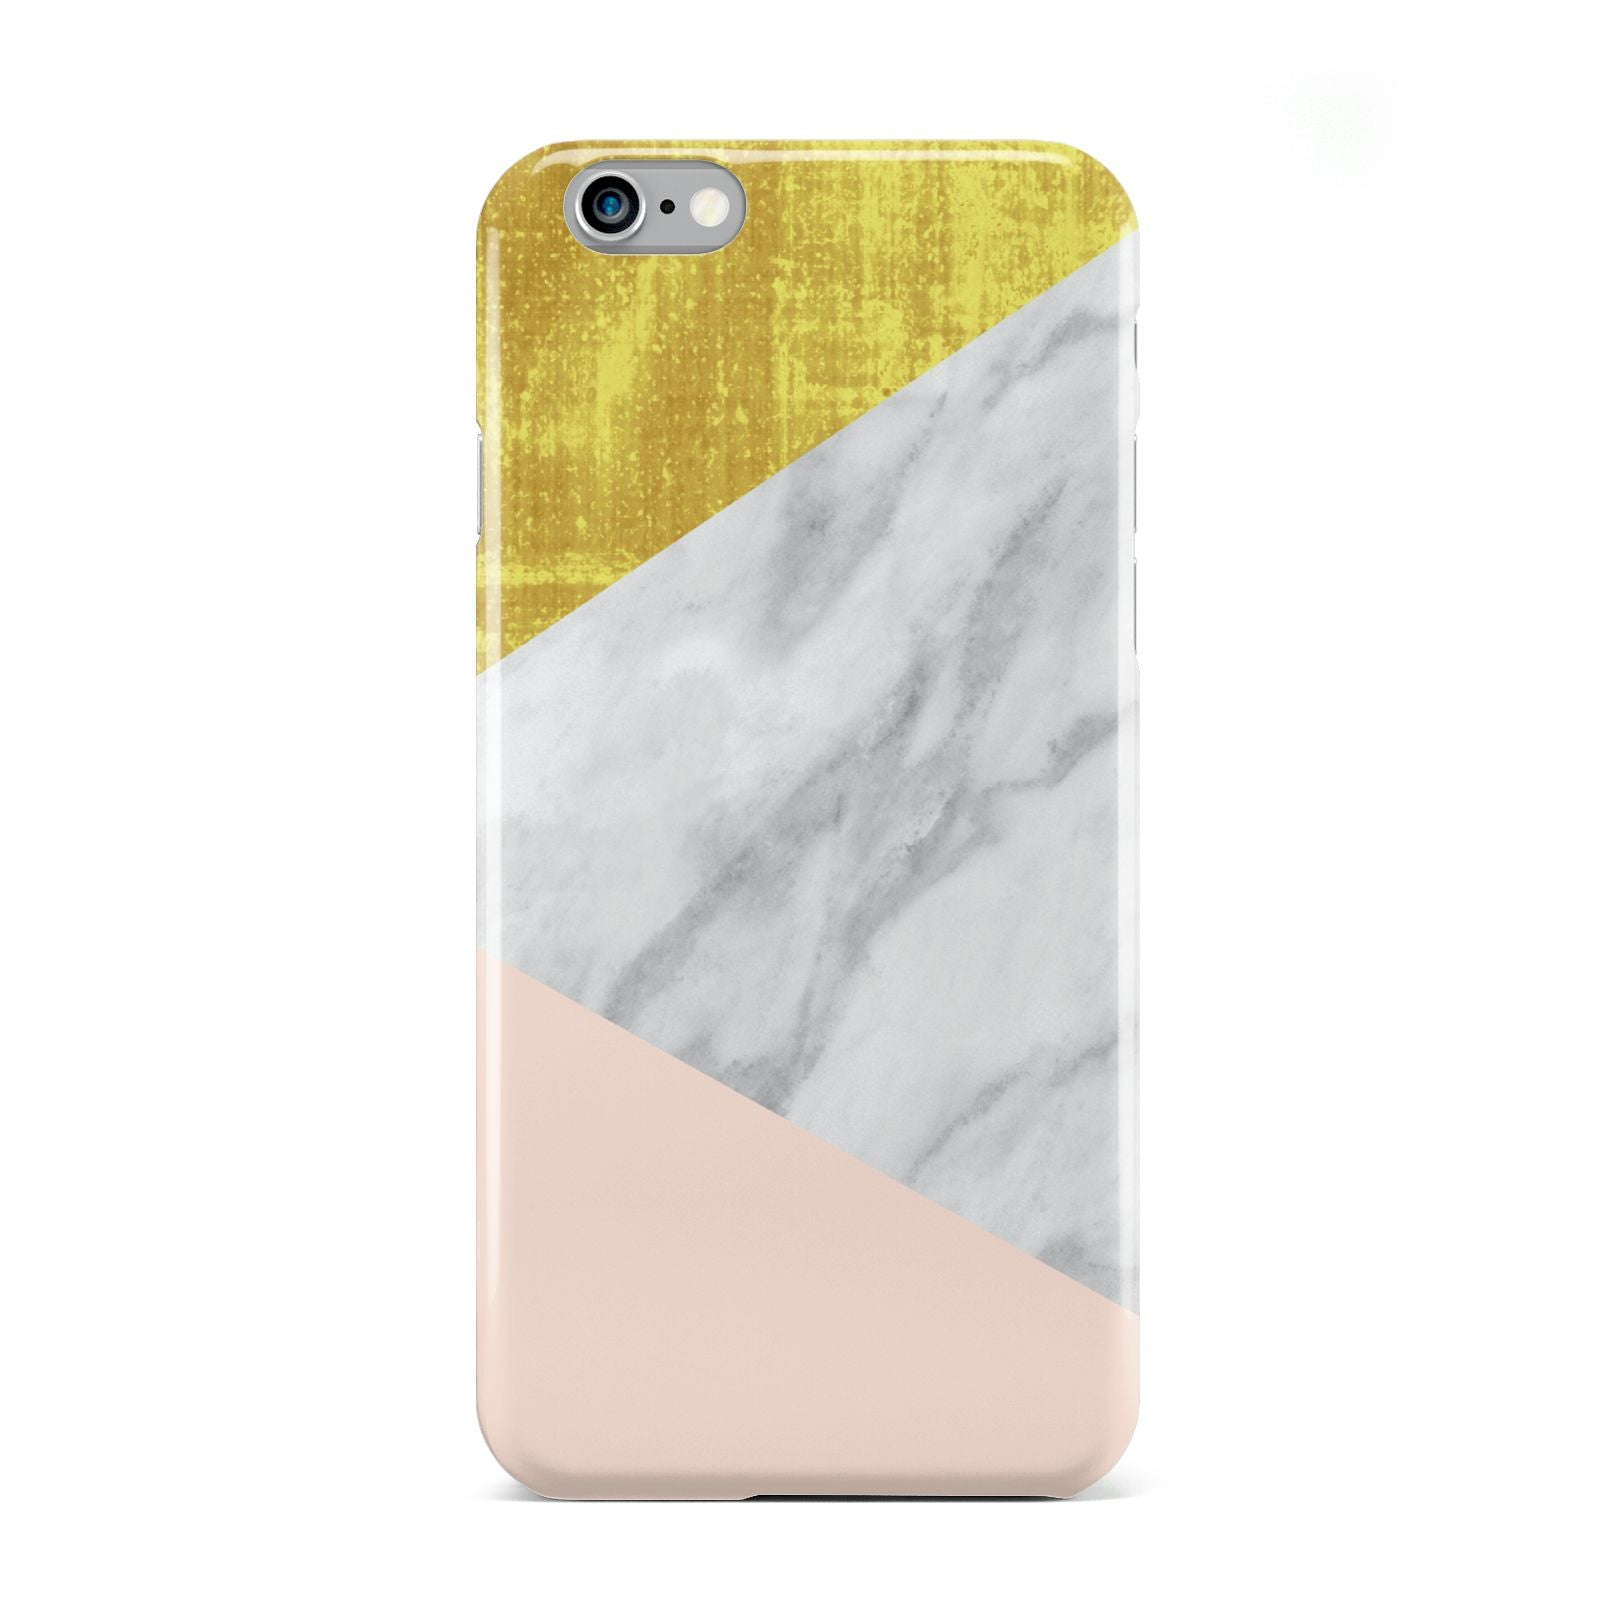 Marble White Gold Foil Peach Apple iPhone 6 Case